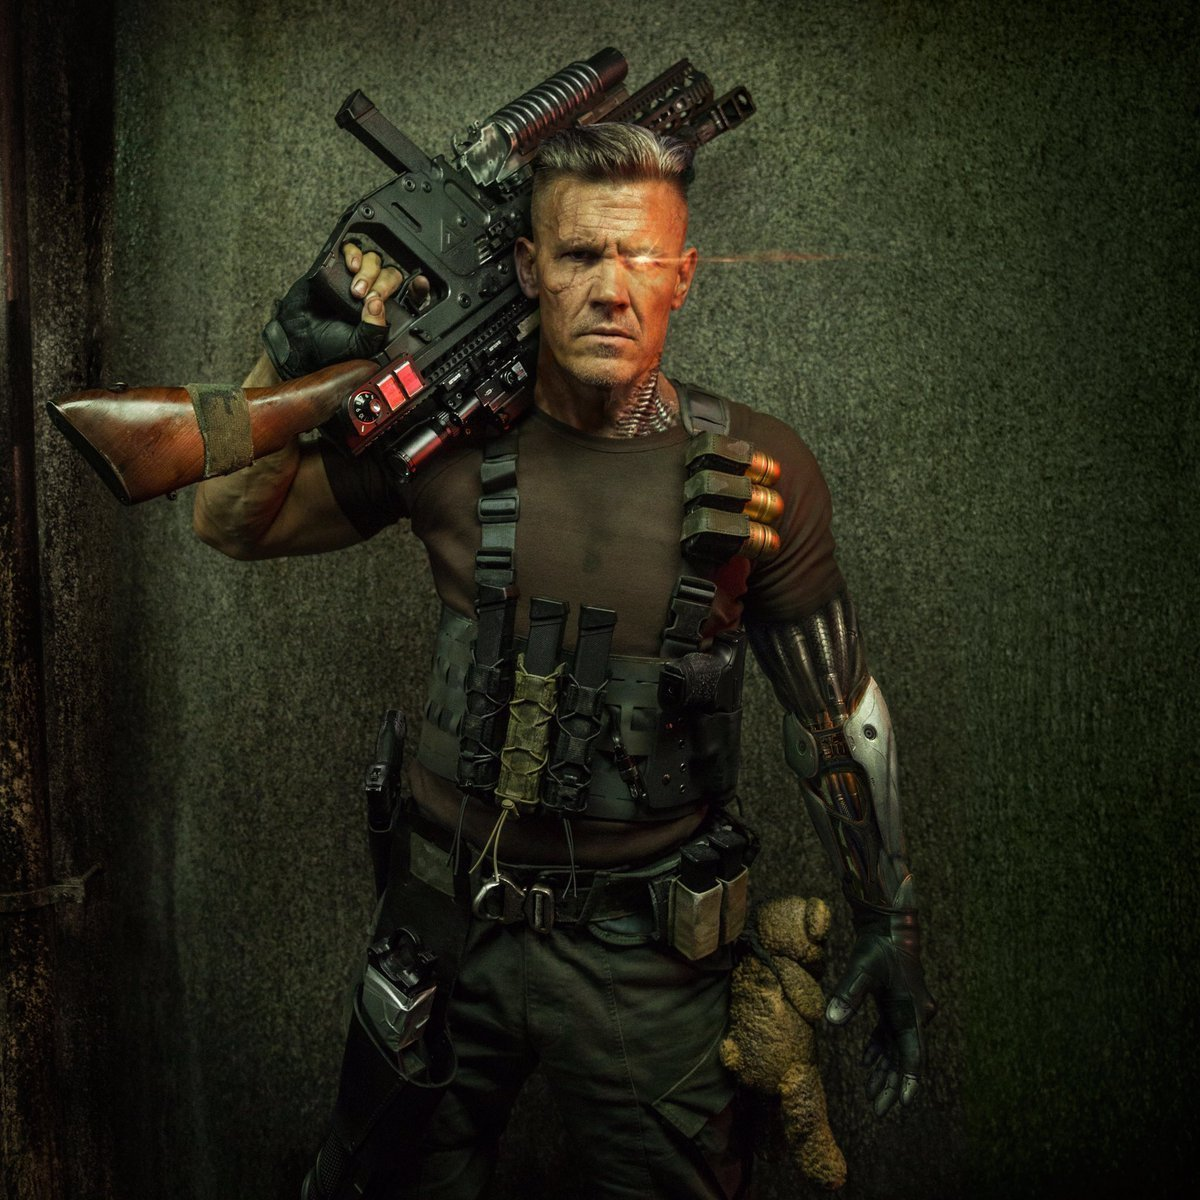 Photo officielle de Cable (Josh Brolin) armé pour le film Deadpool 2